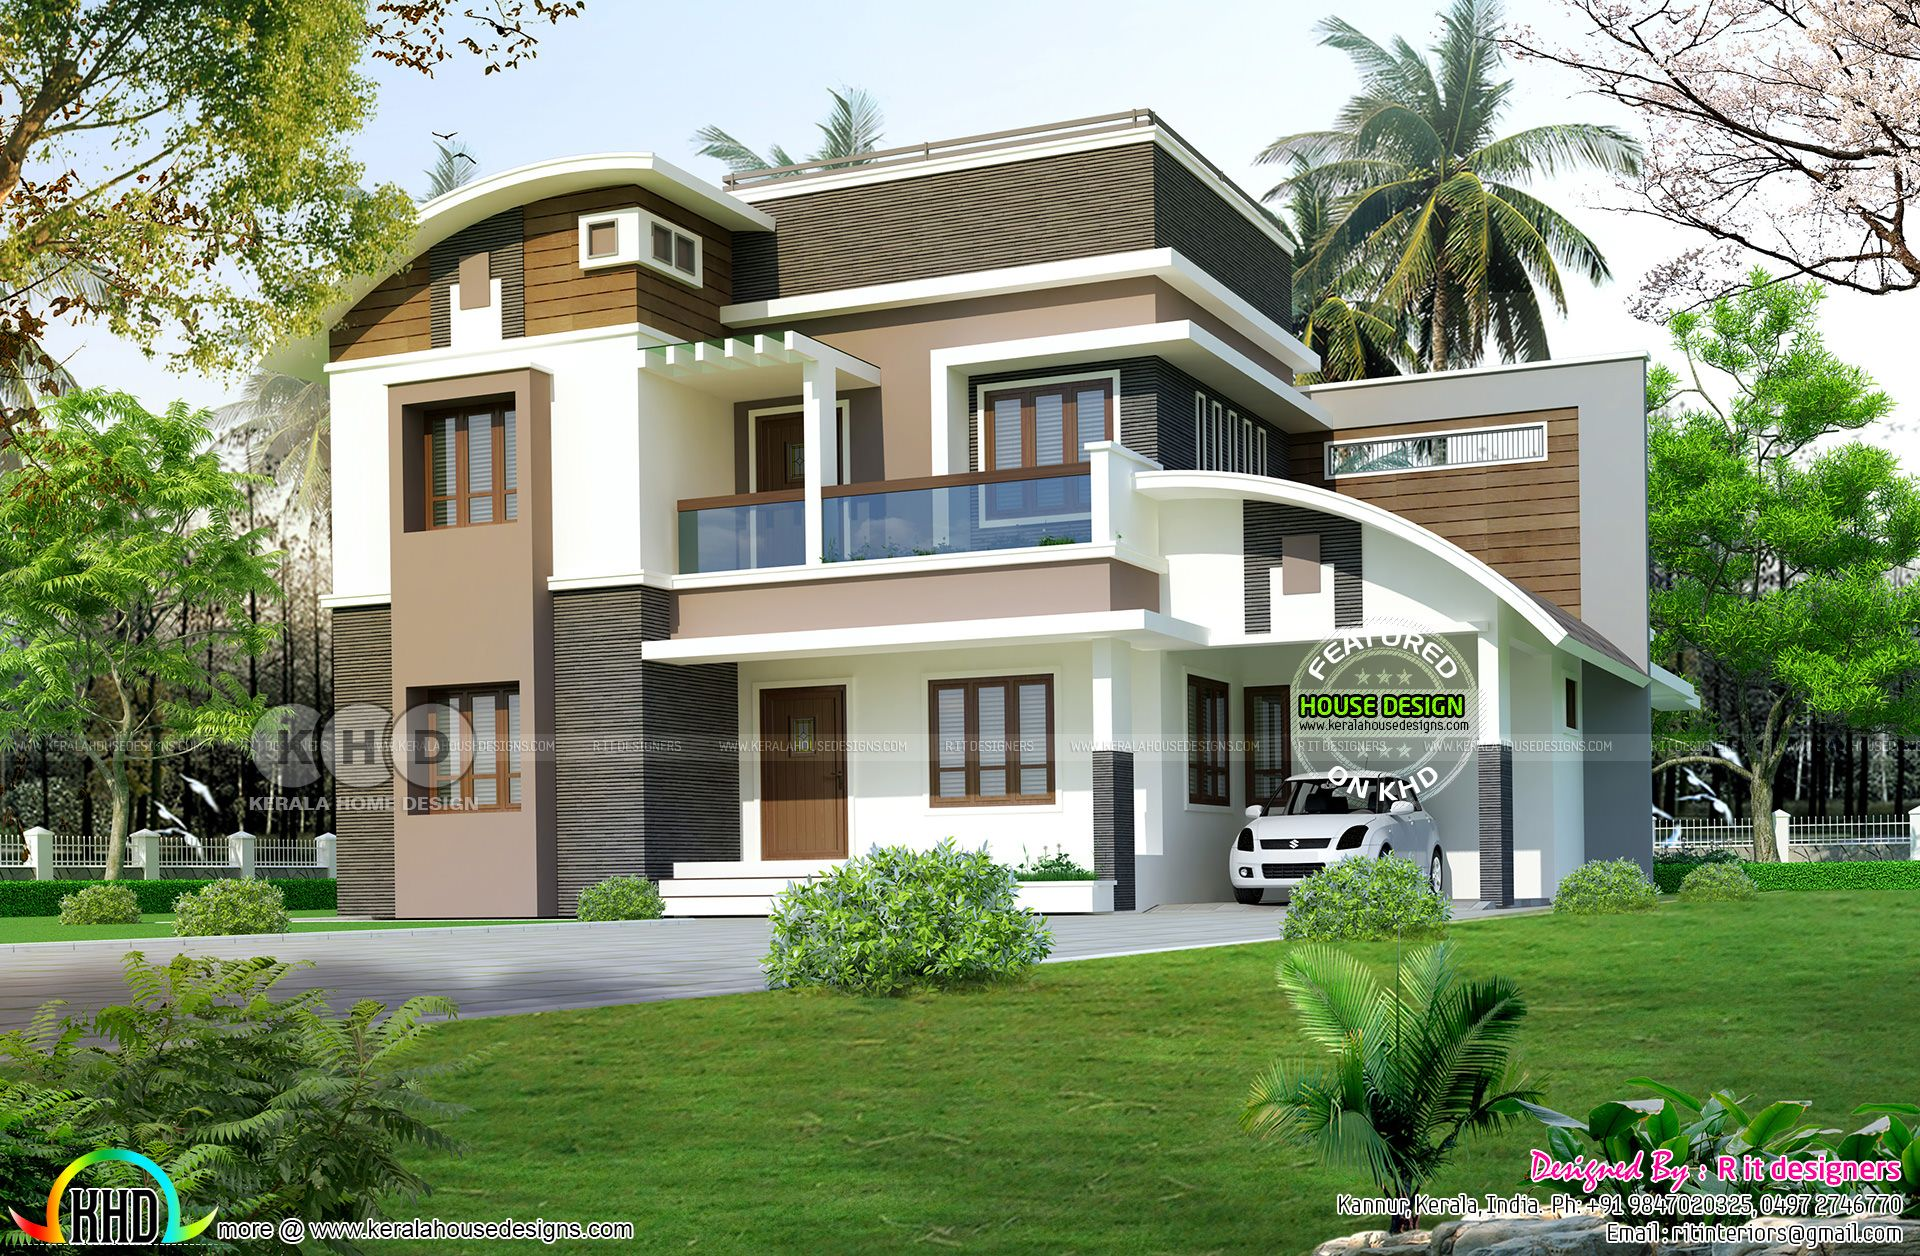 Nice 4 Bedroom Curved Roof Mix Contemporary Home Part - 14: 2455 Square Feet, 4 Bedroom Curved Roof Mix Modern House Plan By R It  Designers, Kannur, Kerala.